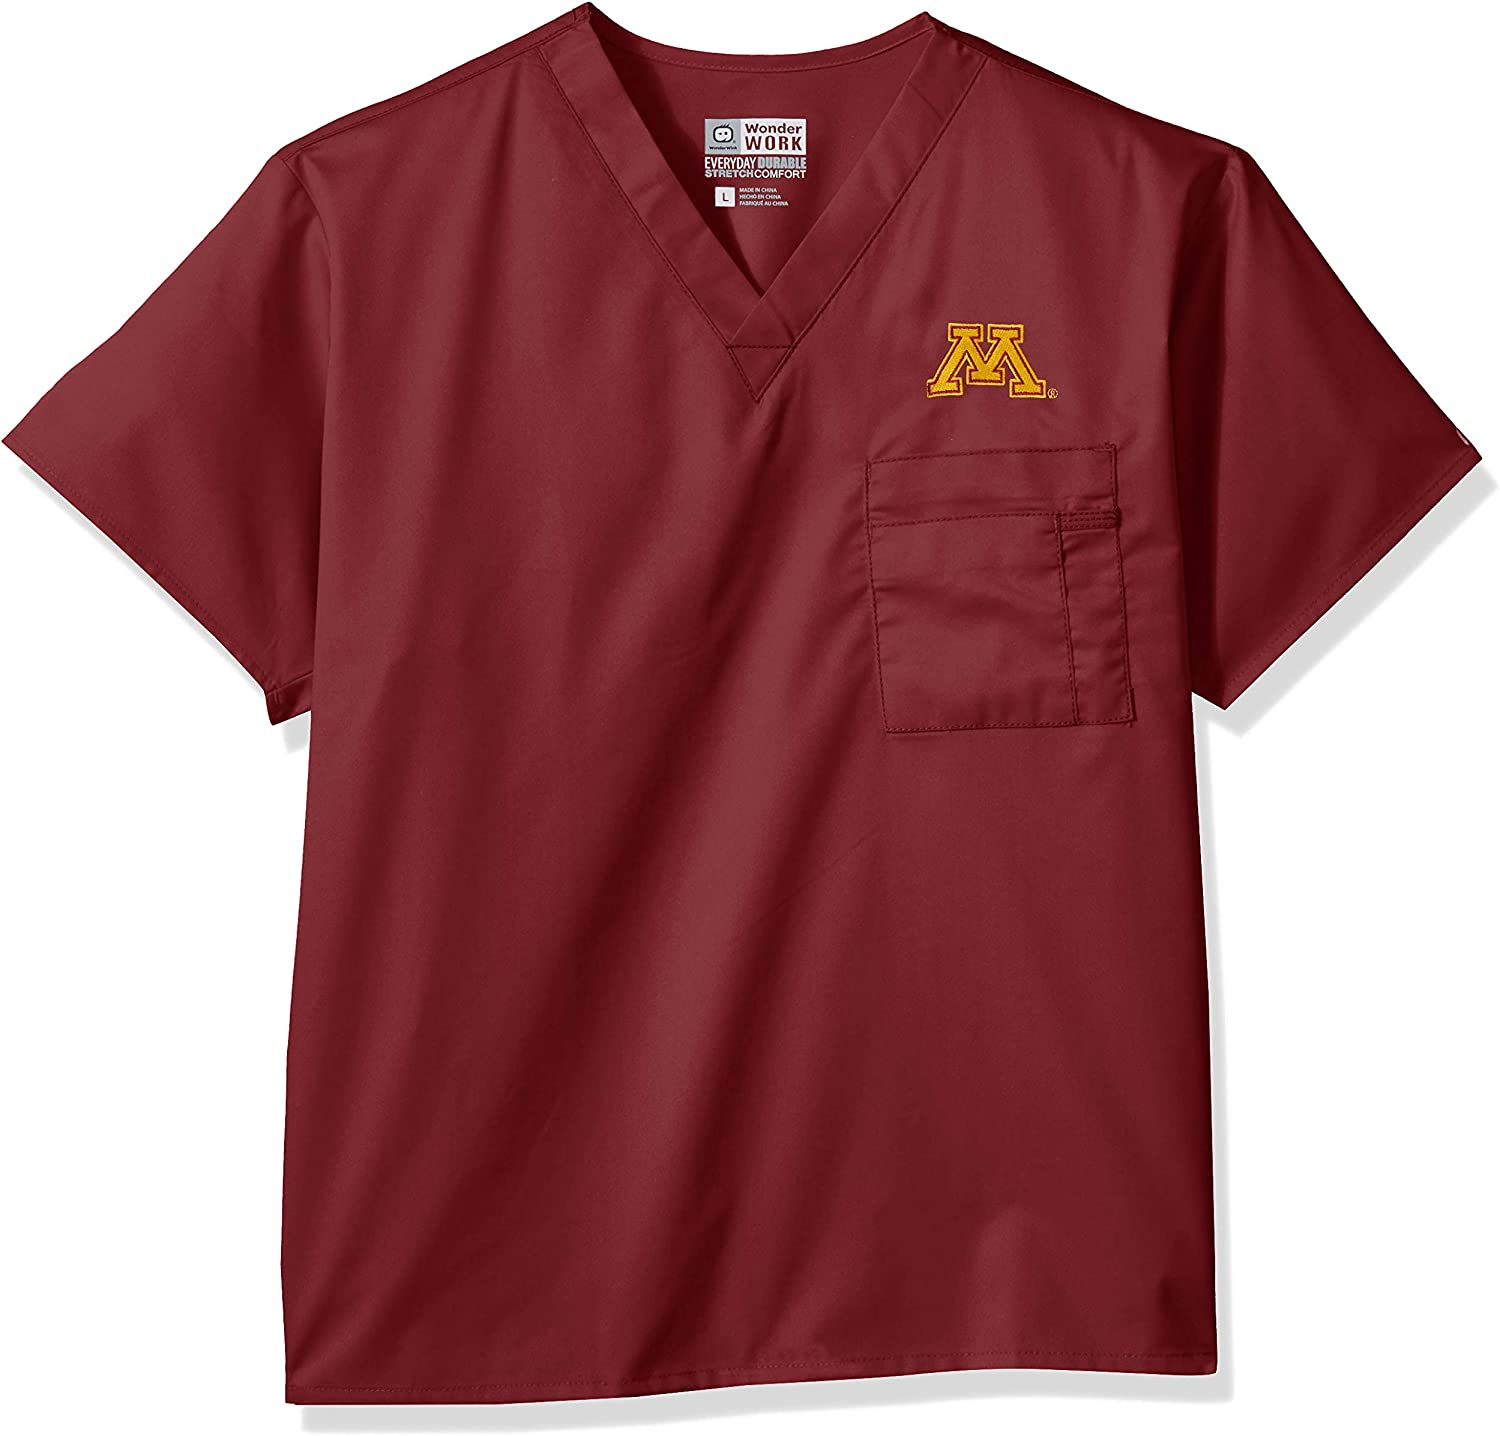 WONDERWINK Unisex-Adult University of Minnesota V-Neck Top